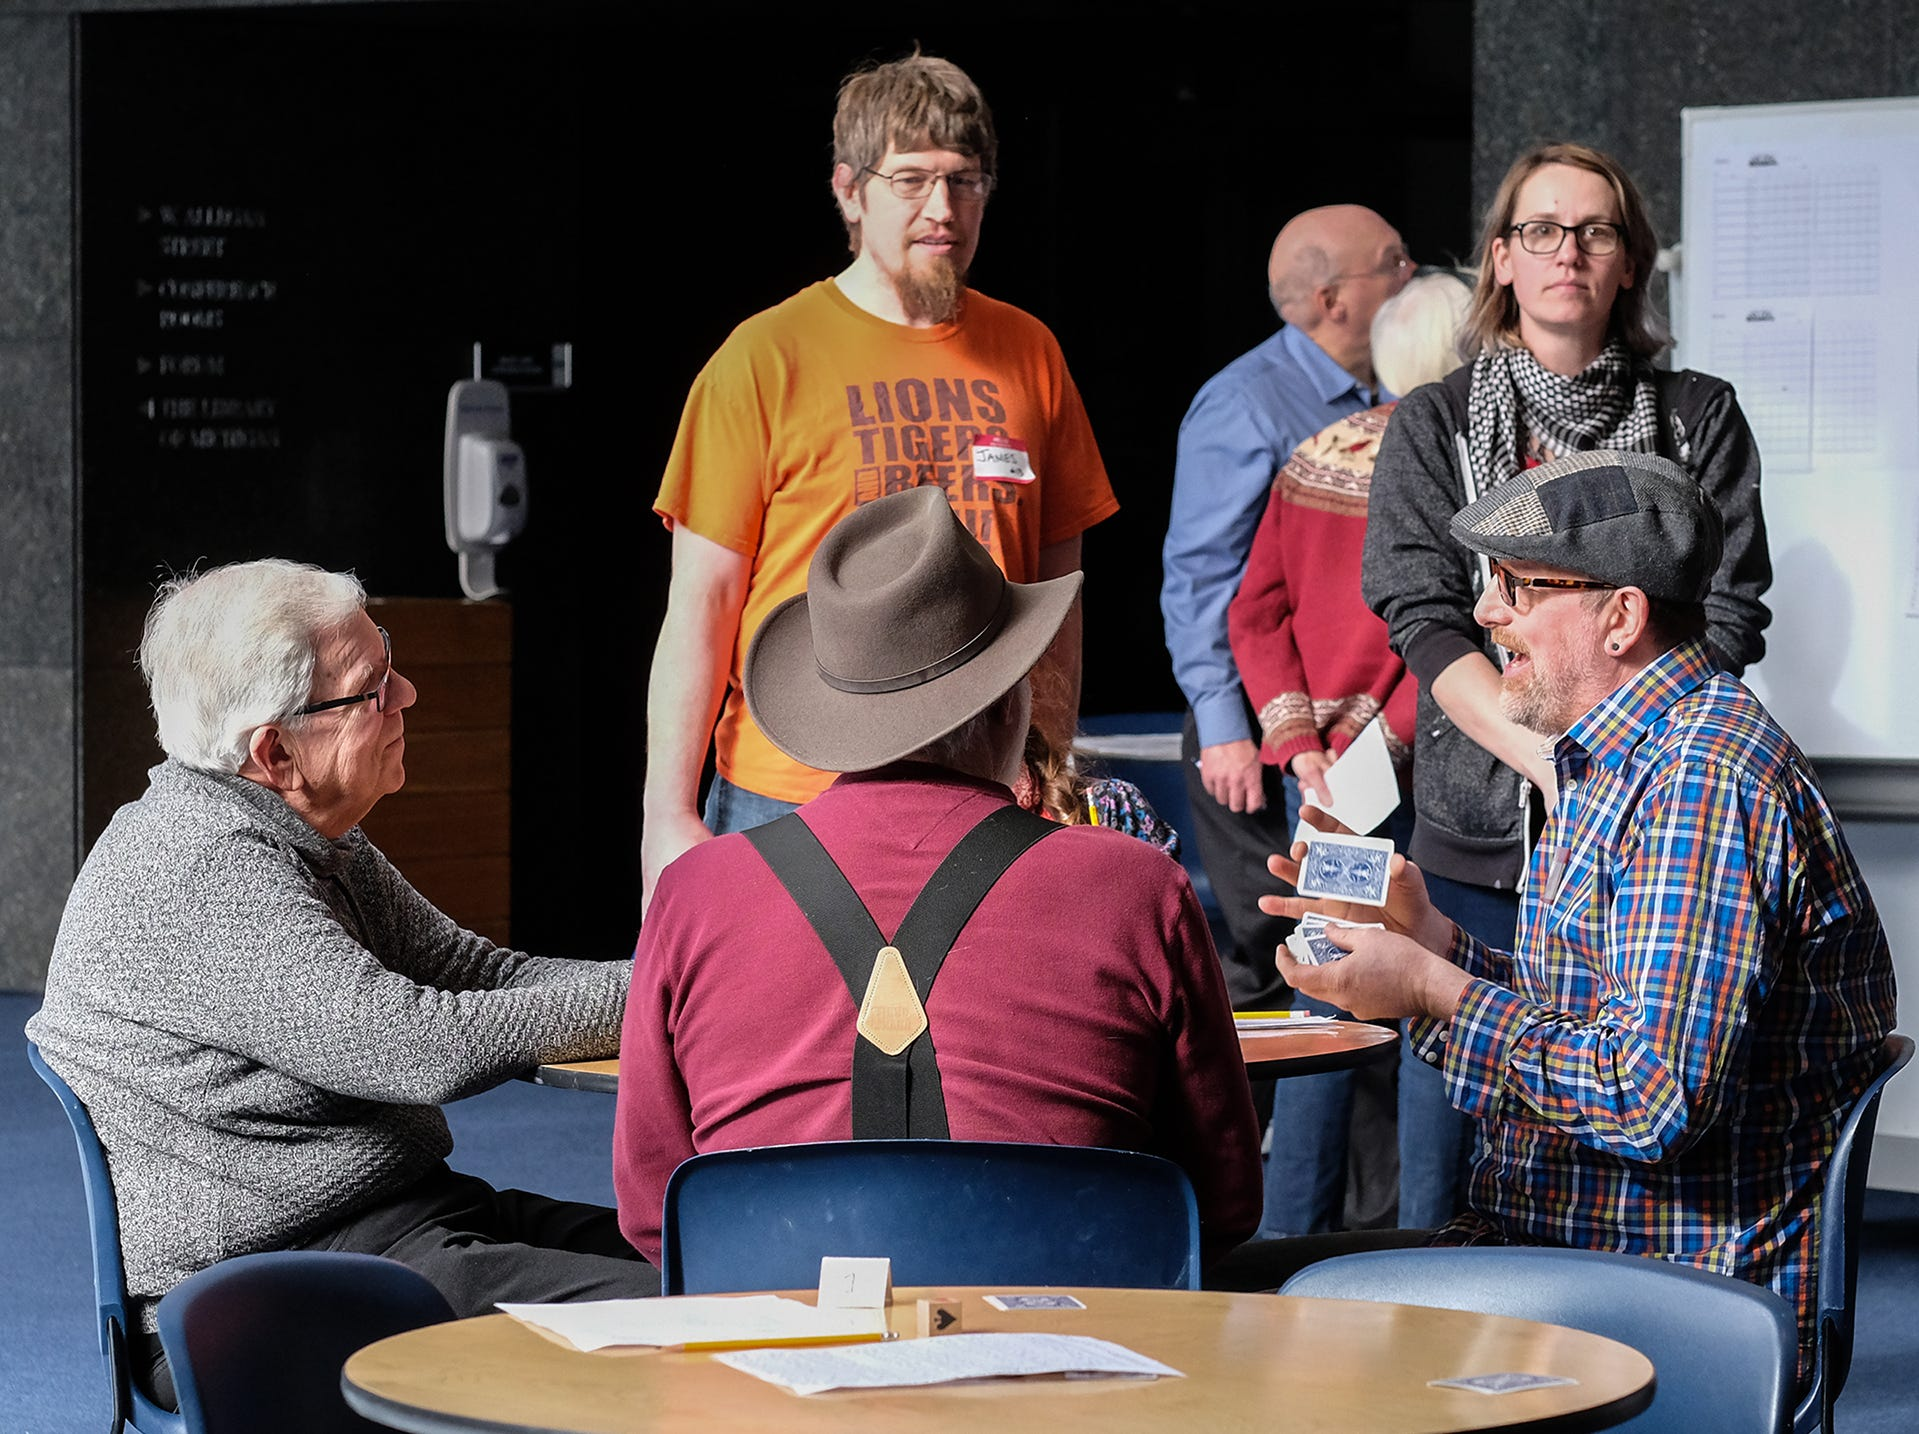 Euchre is played at the Welcome to Statehood Day 2019 event at the Michigan Library and Historical Center Saturday, Jan. 26, 2019. Michigan became a state on this day in 1837.